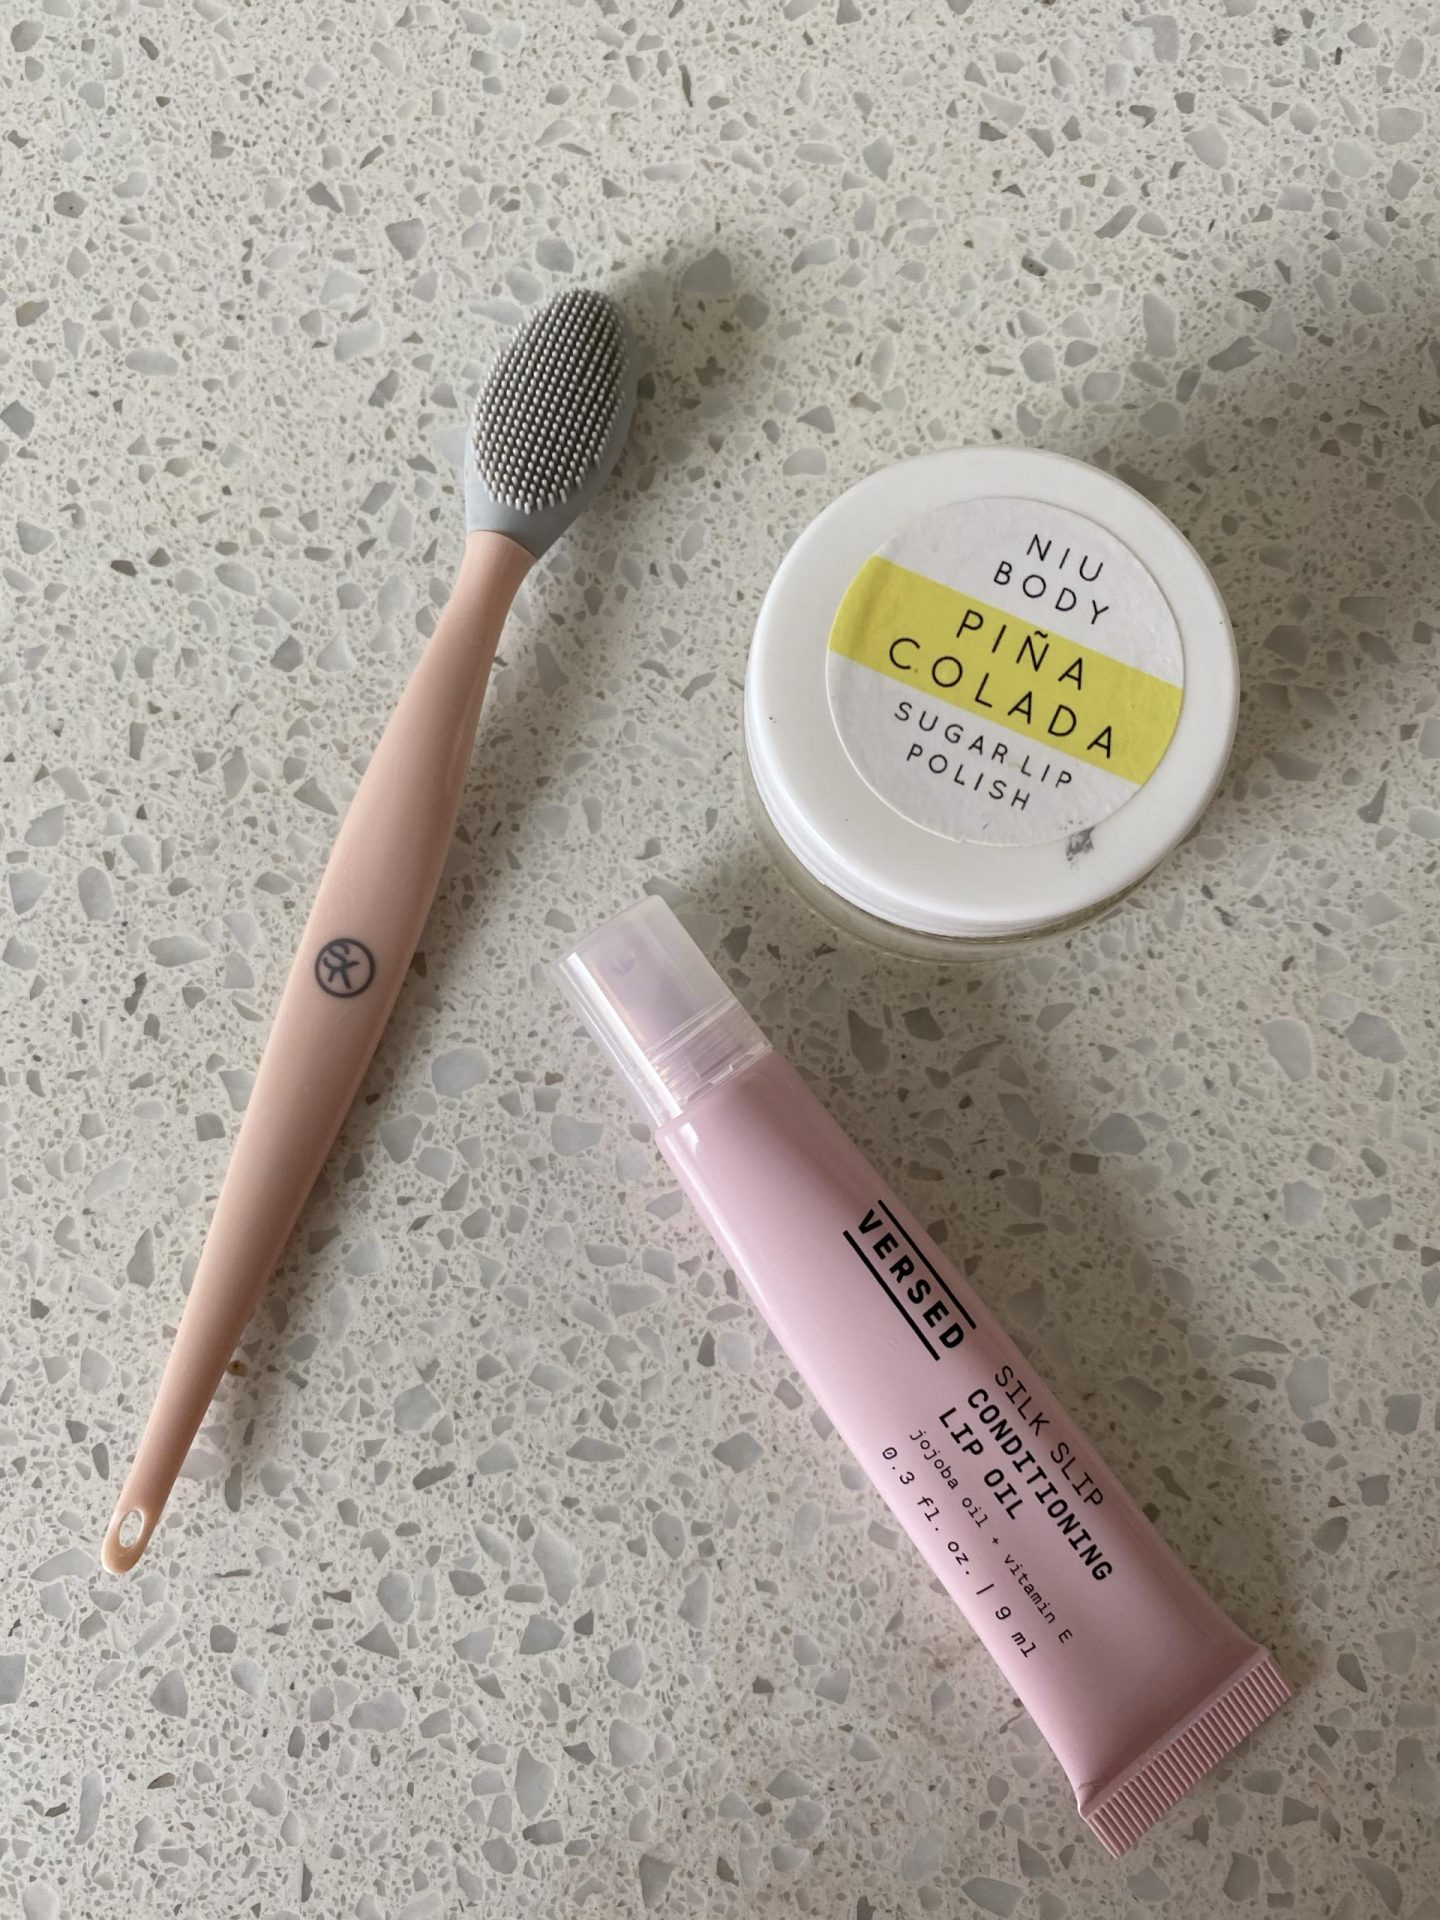 NC blogger Rebecca Lately is sharing her cruelty free, affordable lip care routine. If you are suffering from dry lips, check it out!